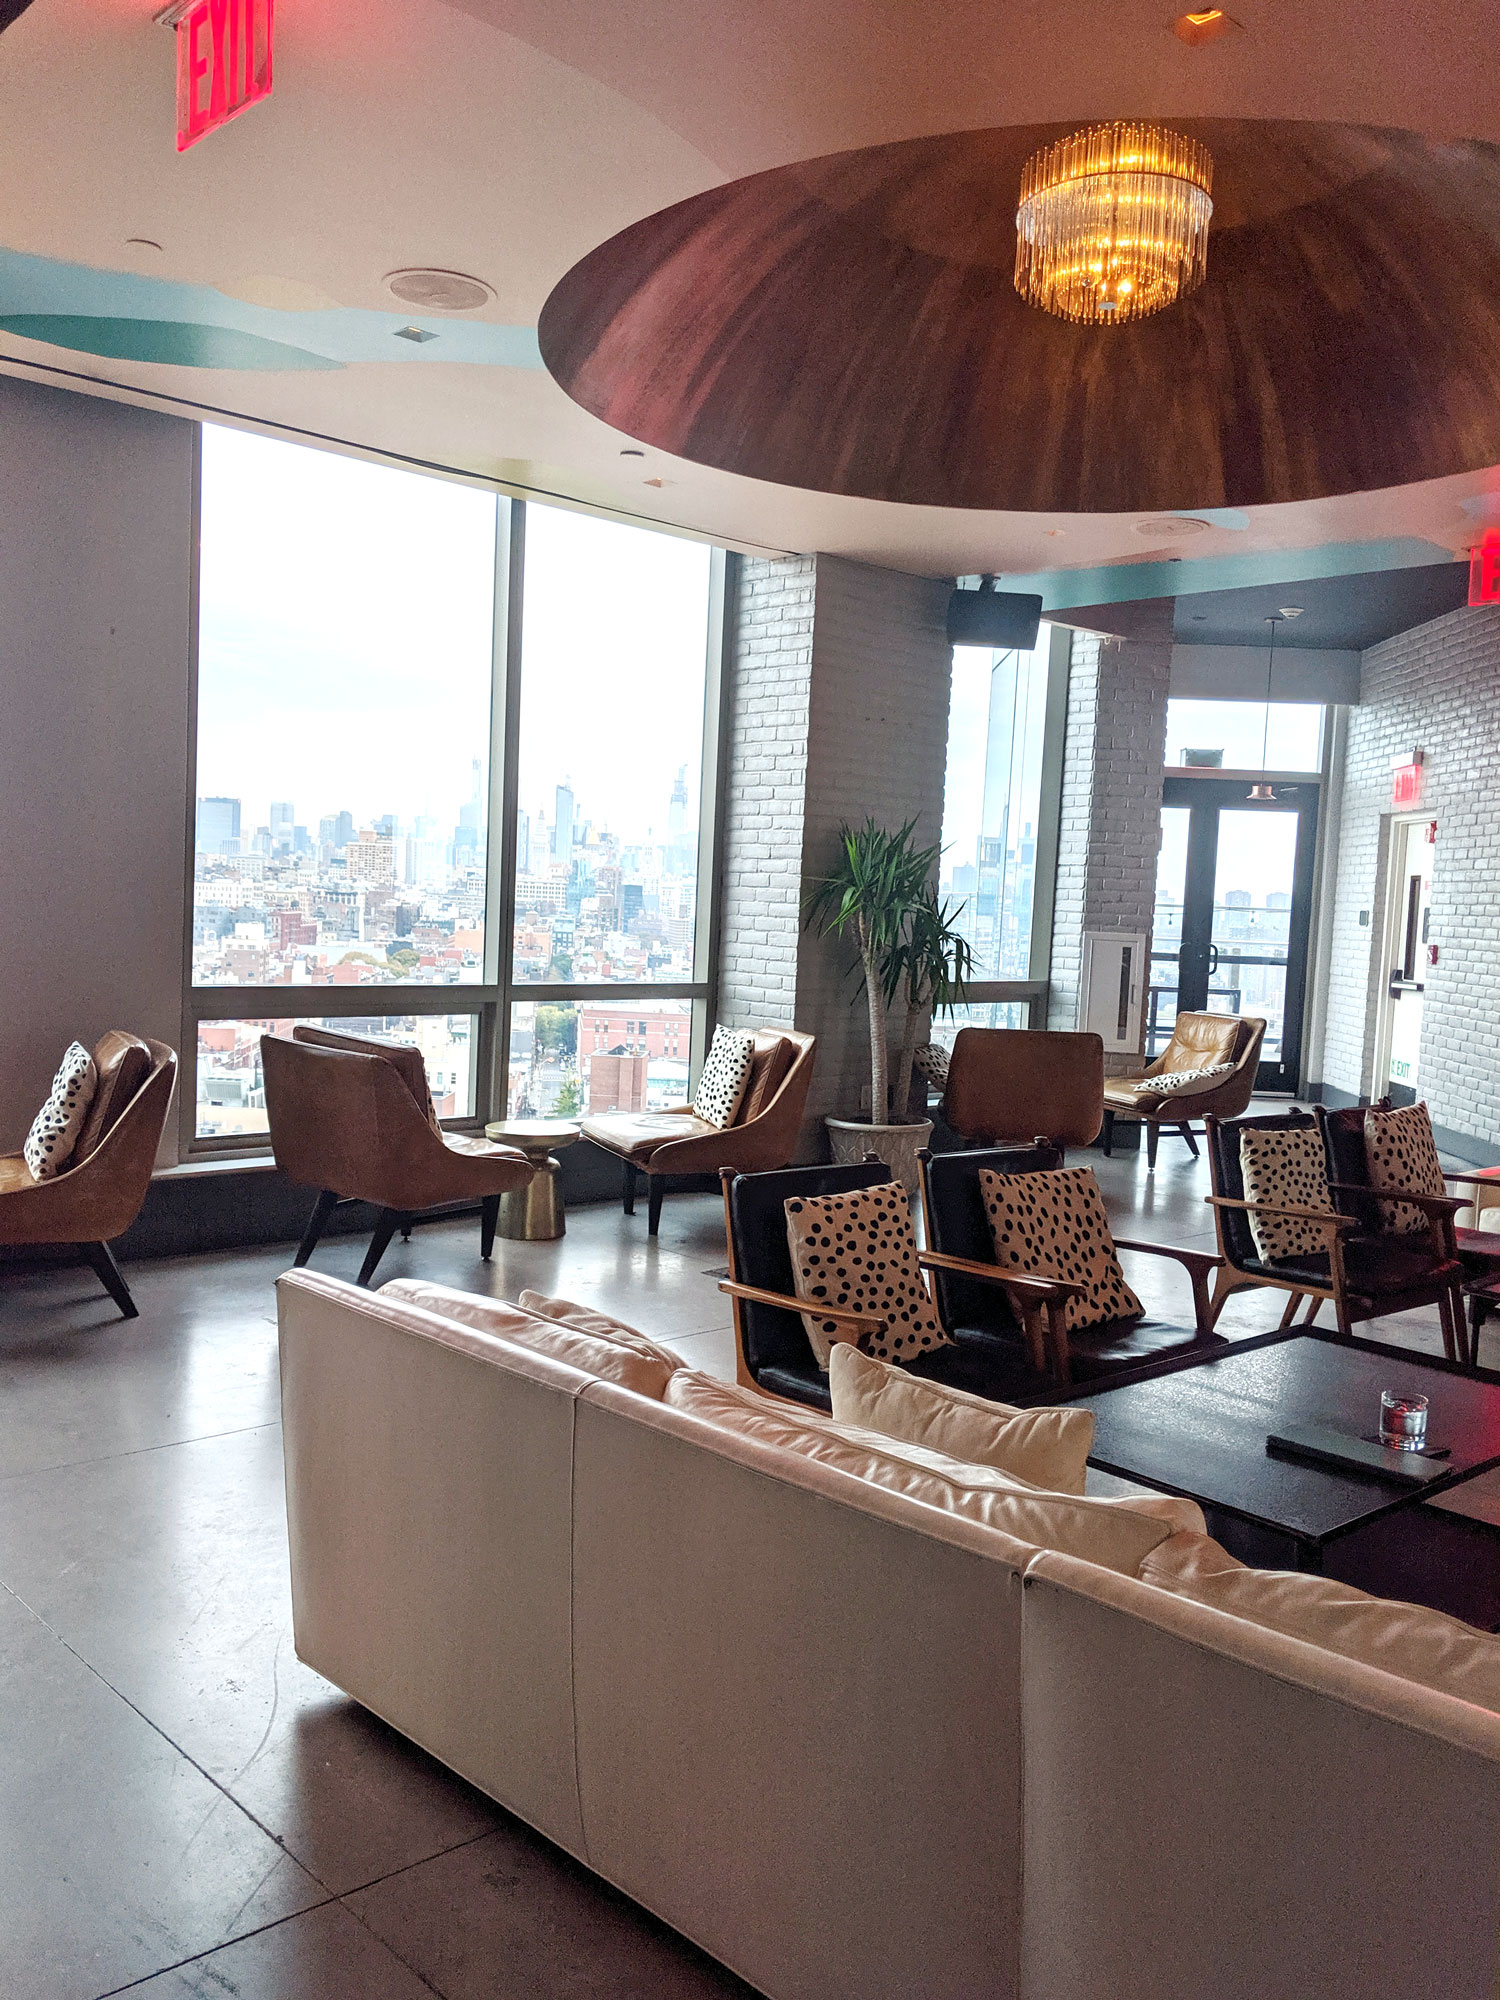 Hotel-50-Bowery-New-York-Manhattan-Review-Room-Travel-Blogger-1